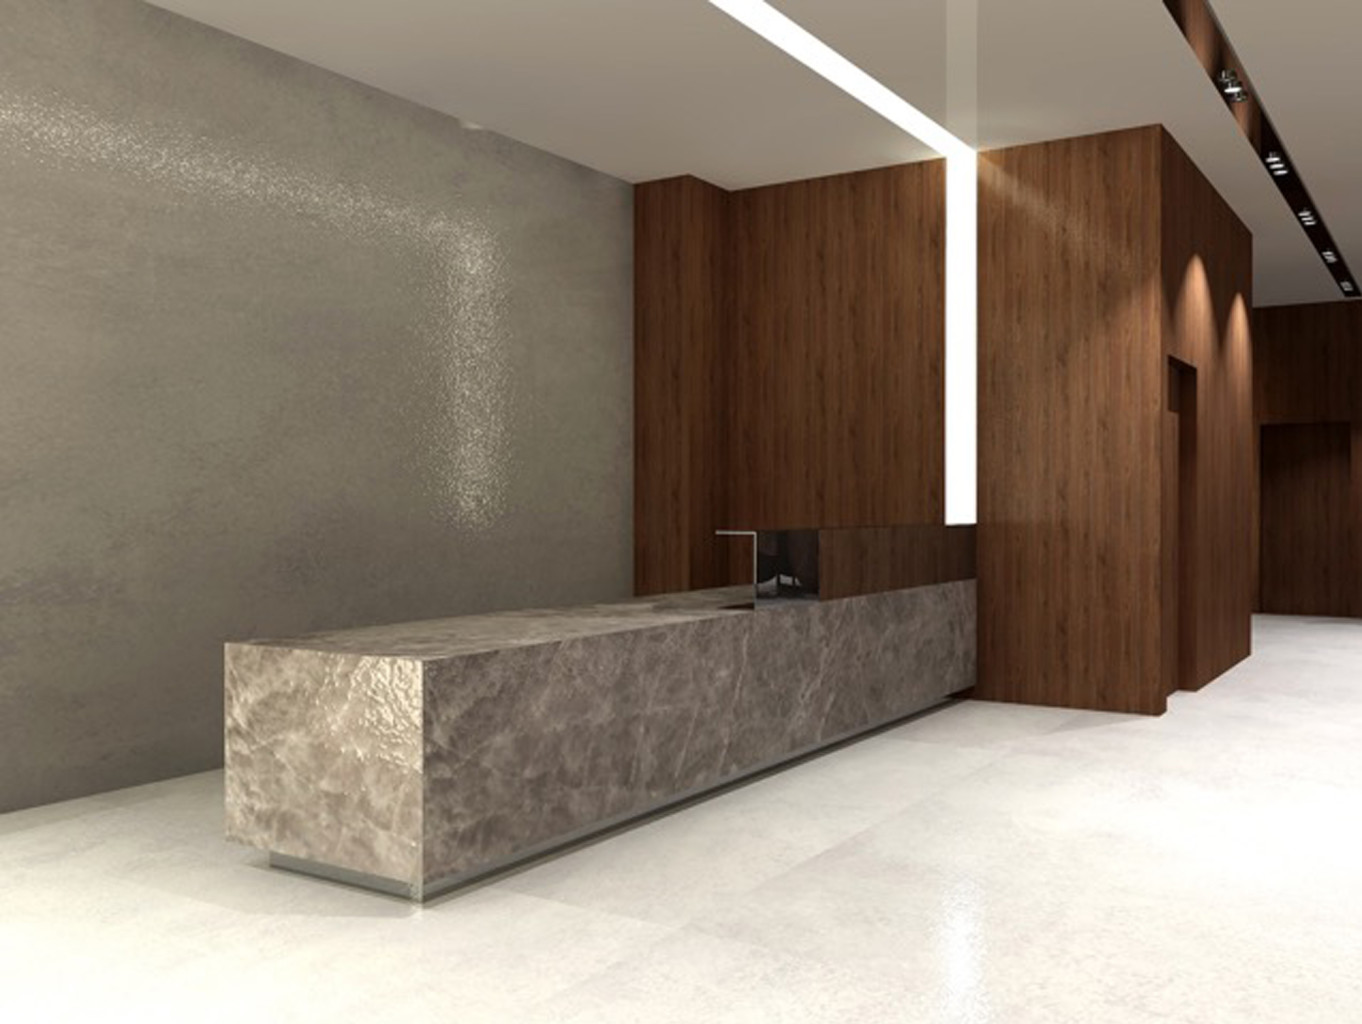 paceville offices render 4